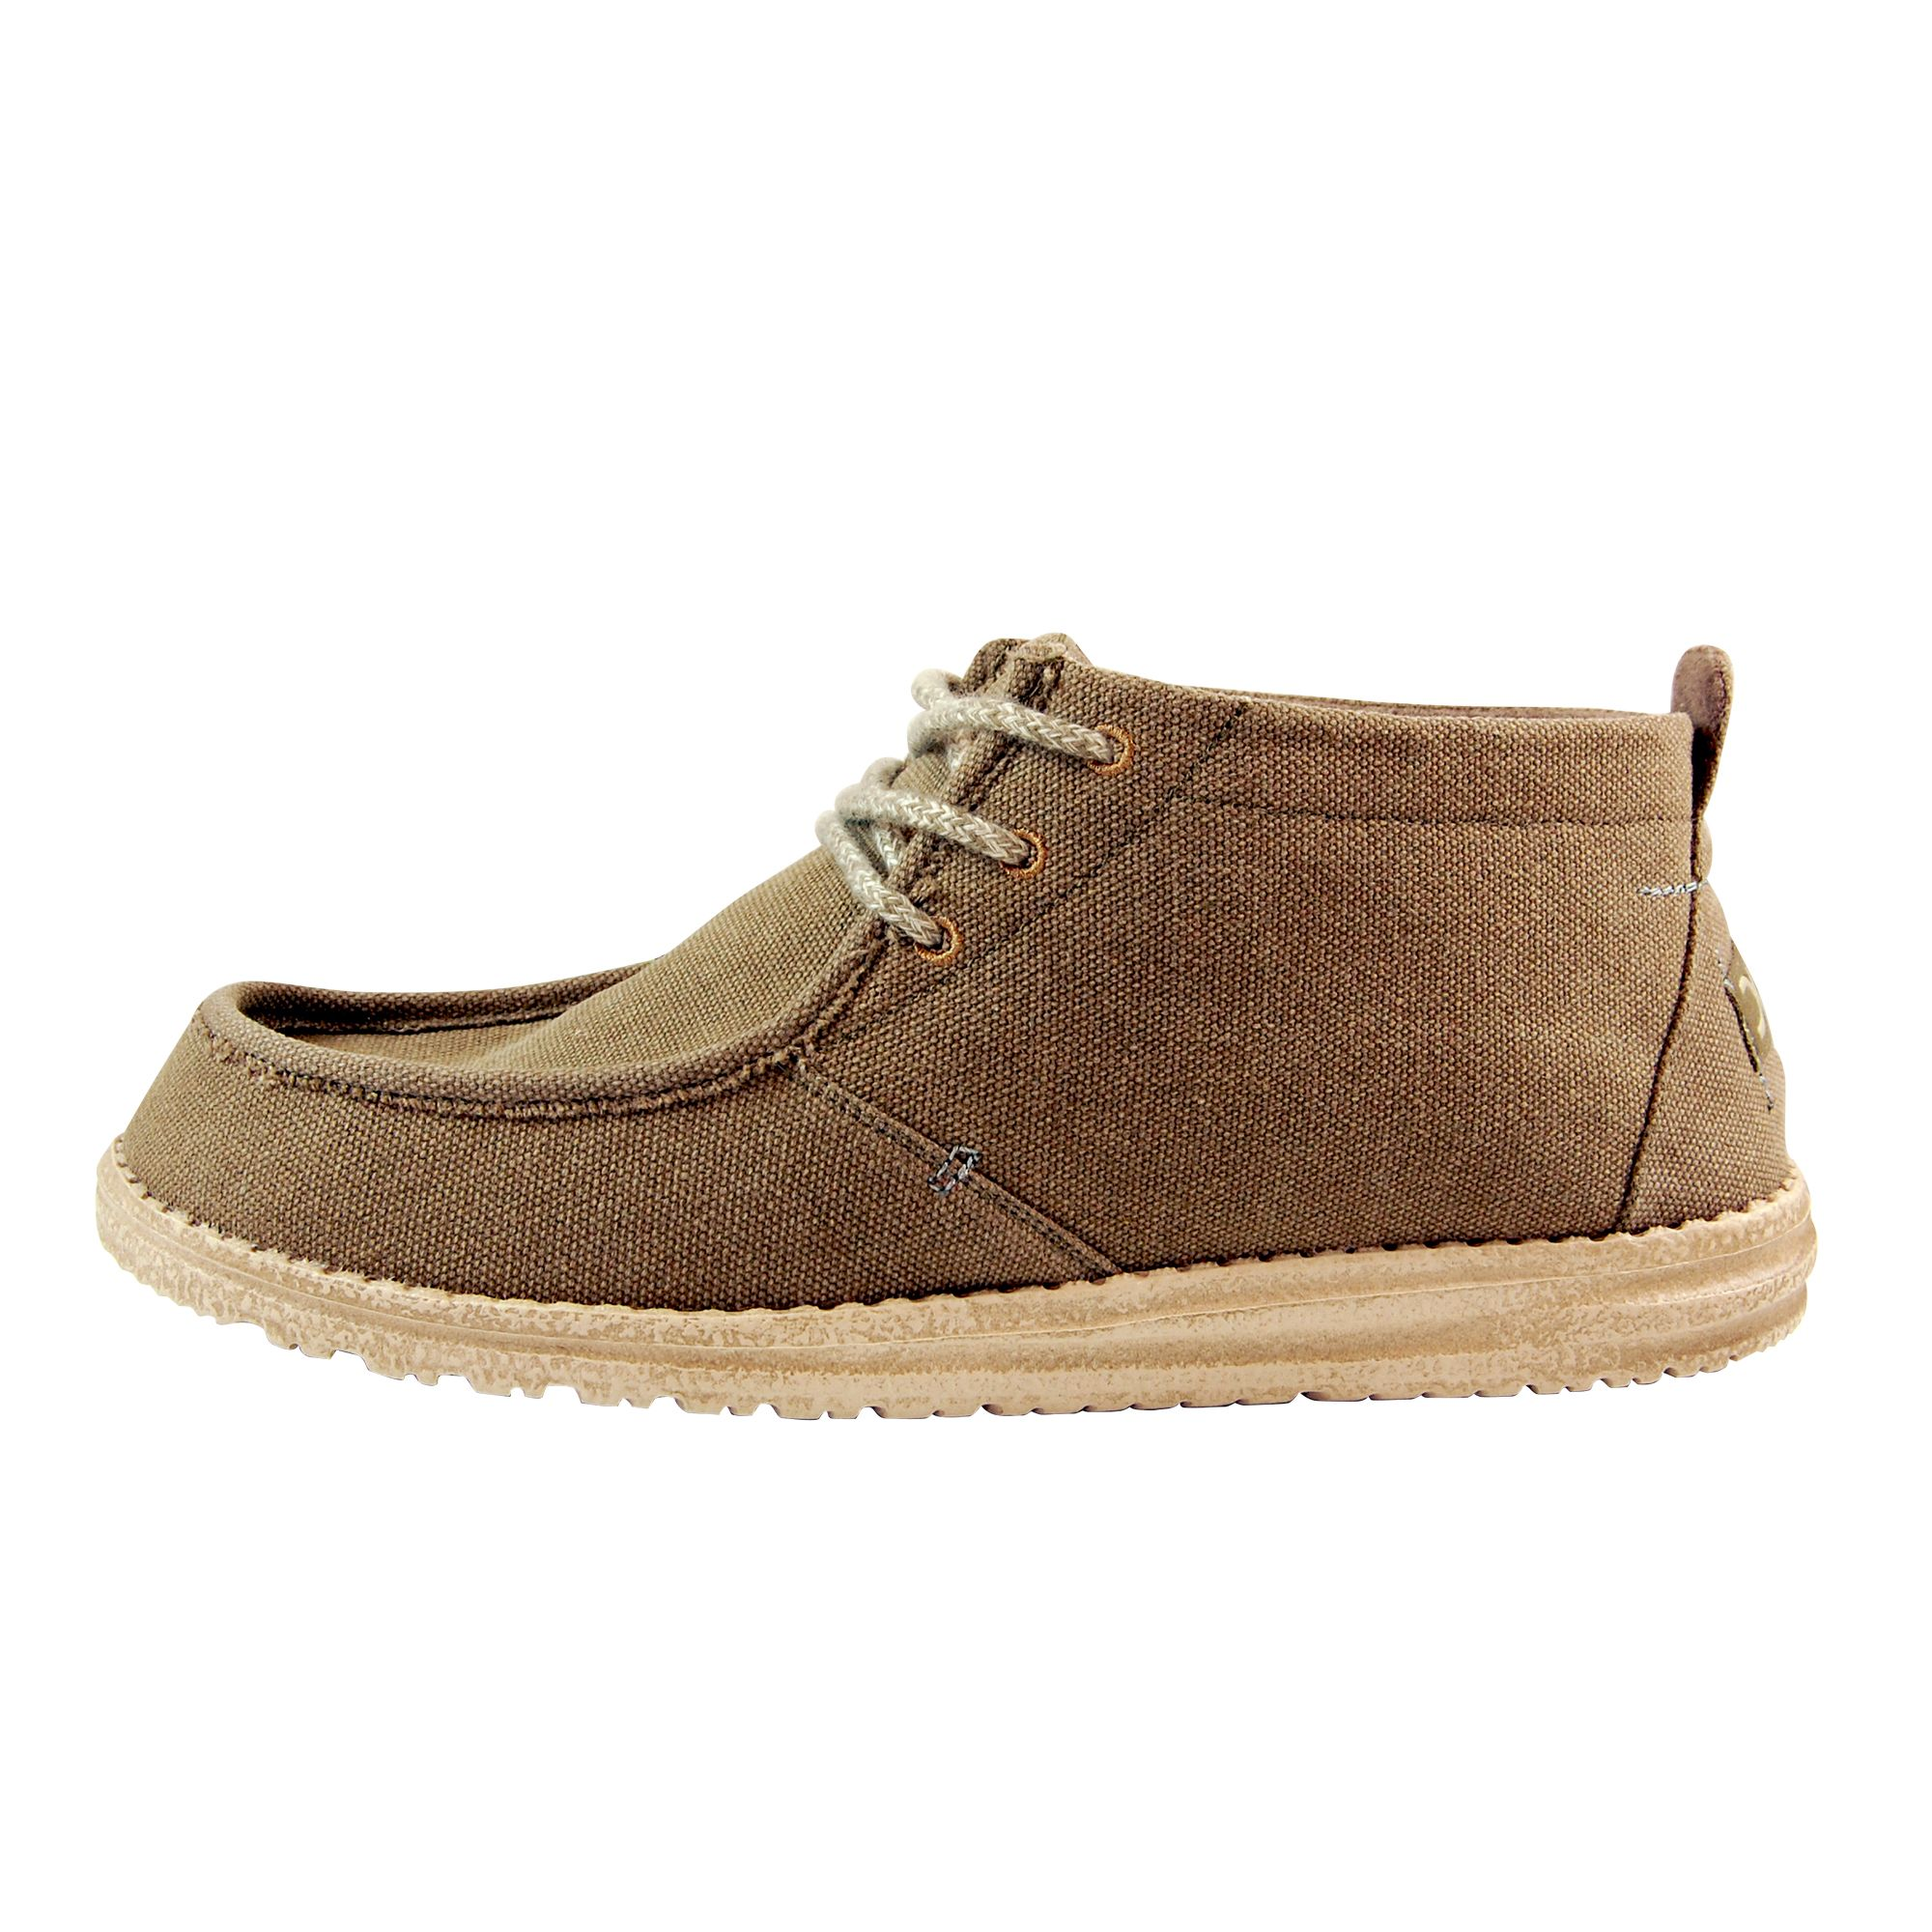 Hey Dude Conrad Shoes Olive Dude Men/'s Shoes Casual Shoes